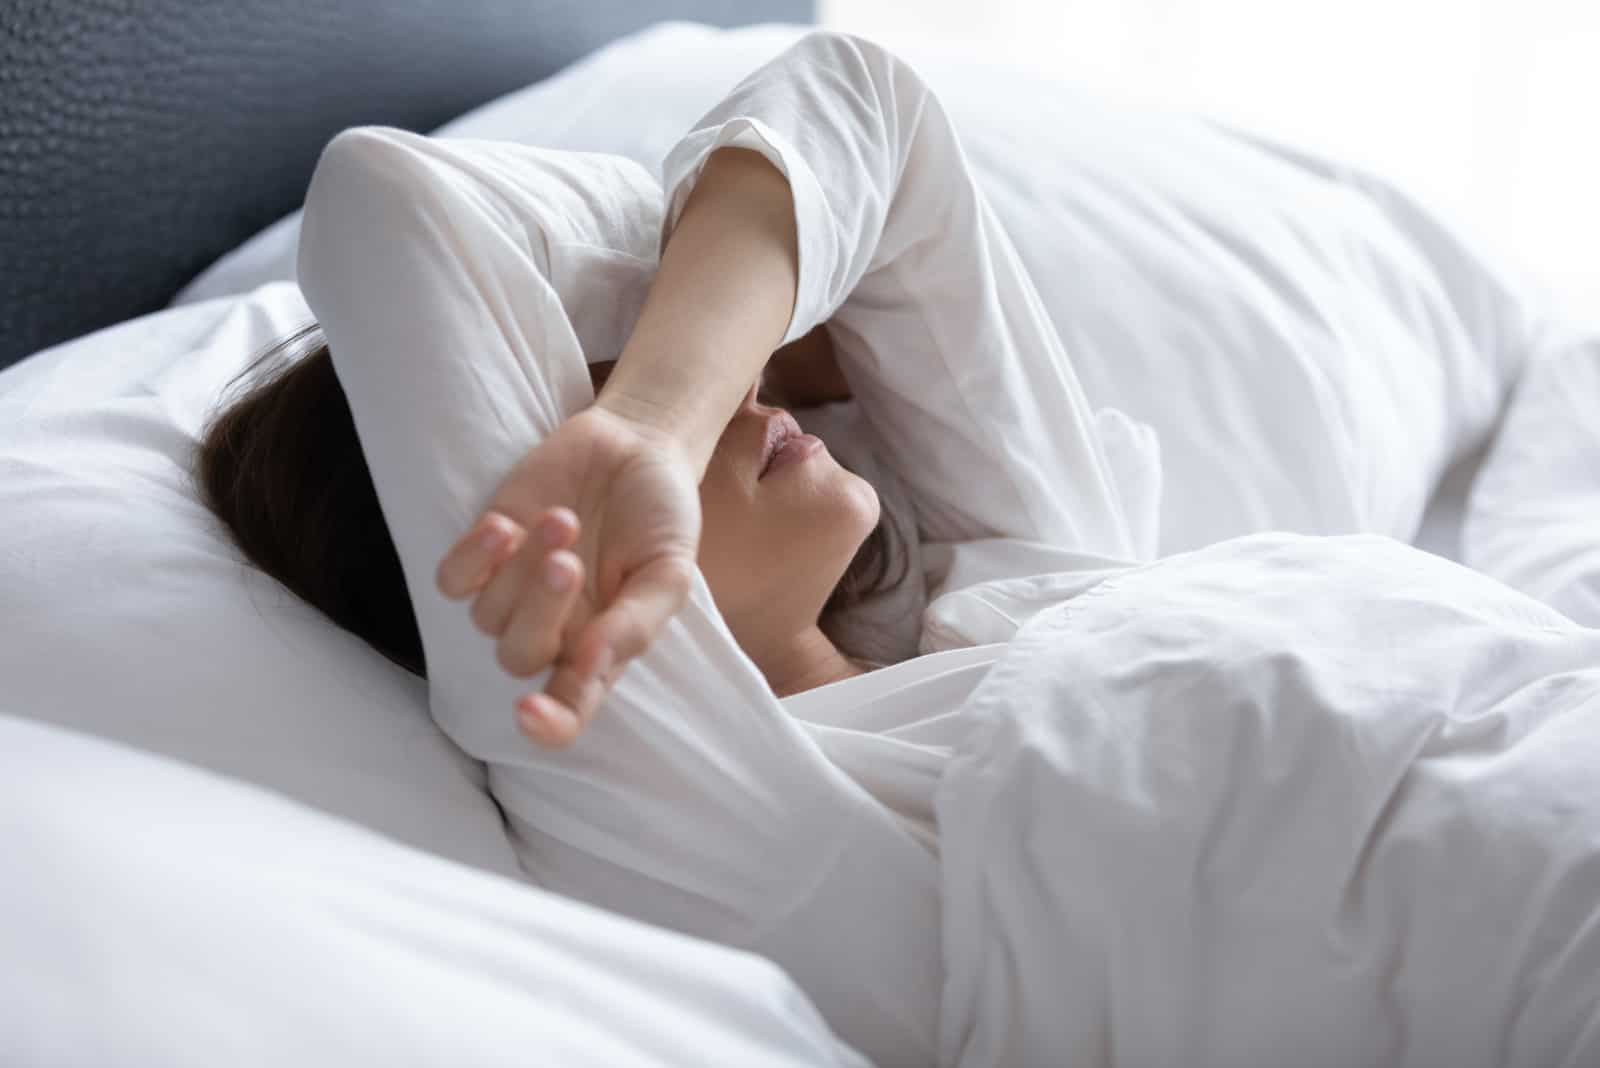 the woman is lying in bed